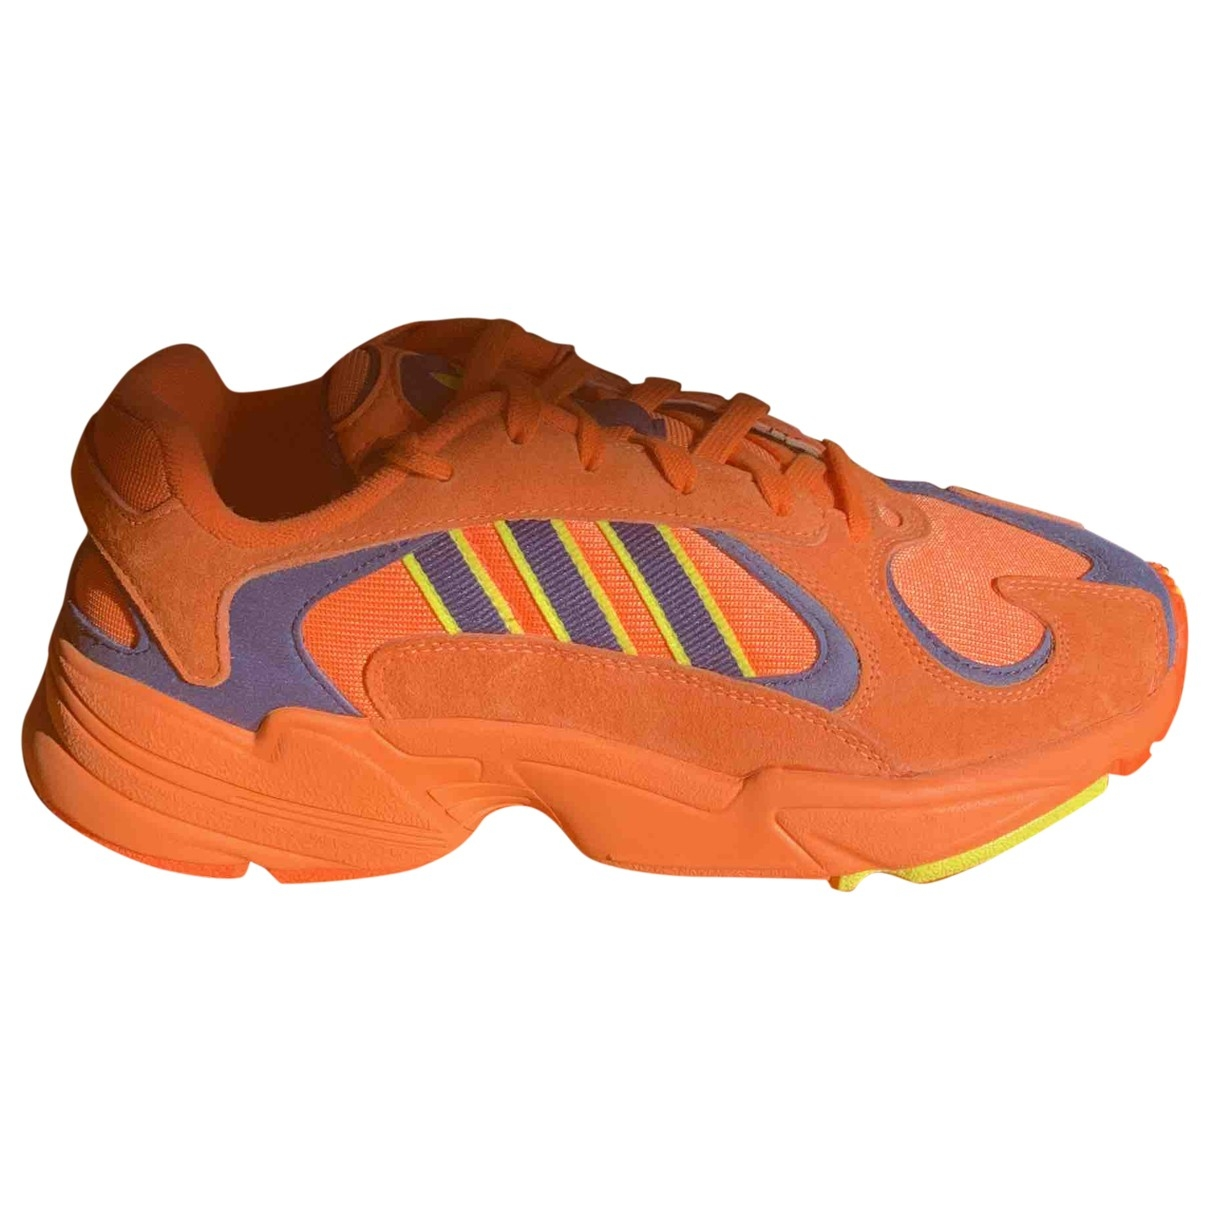 Adidas Yung-1 Orange Leather Trainers for Women 41.5 EU